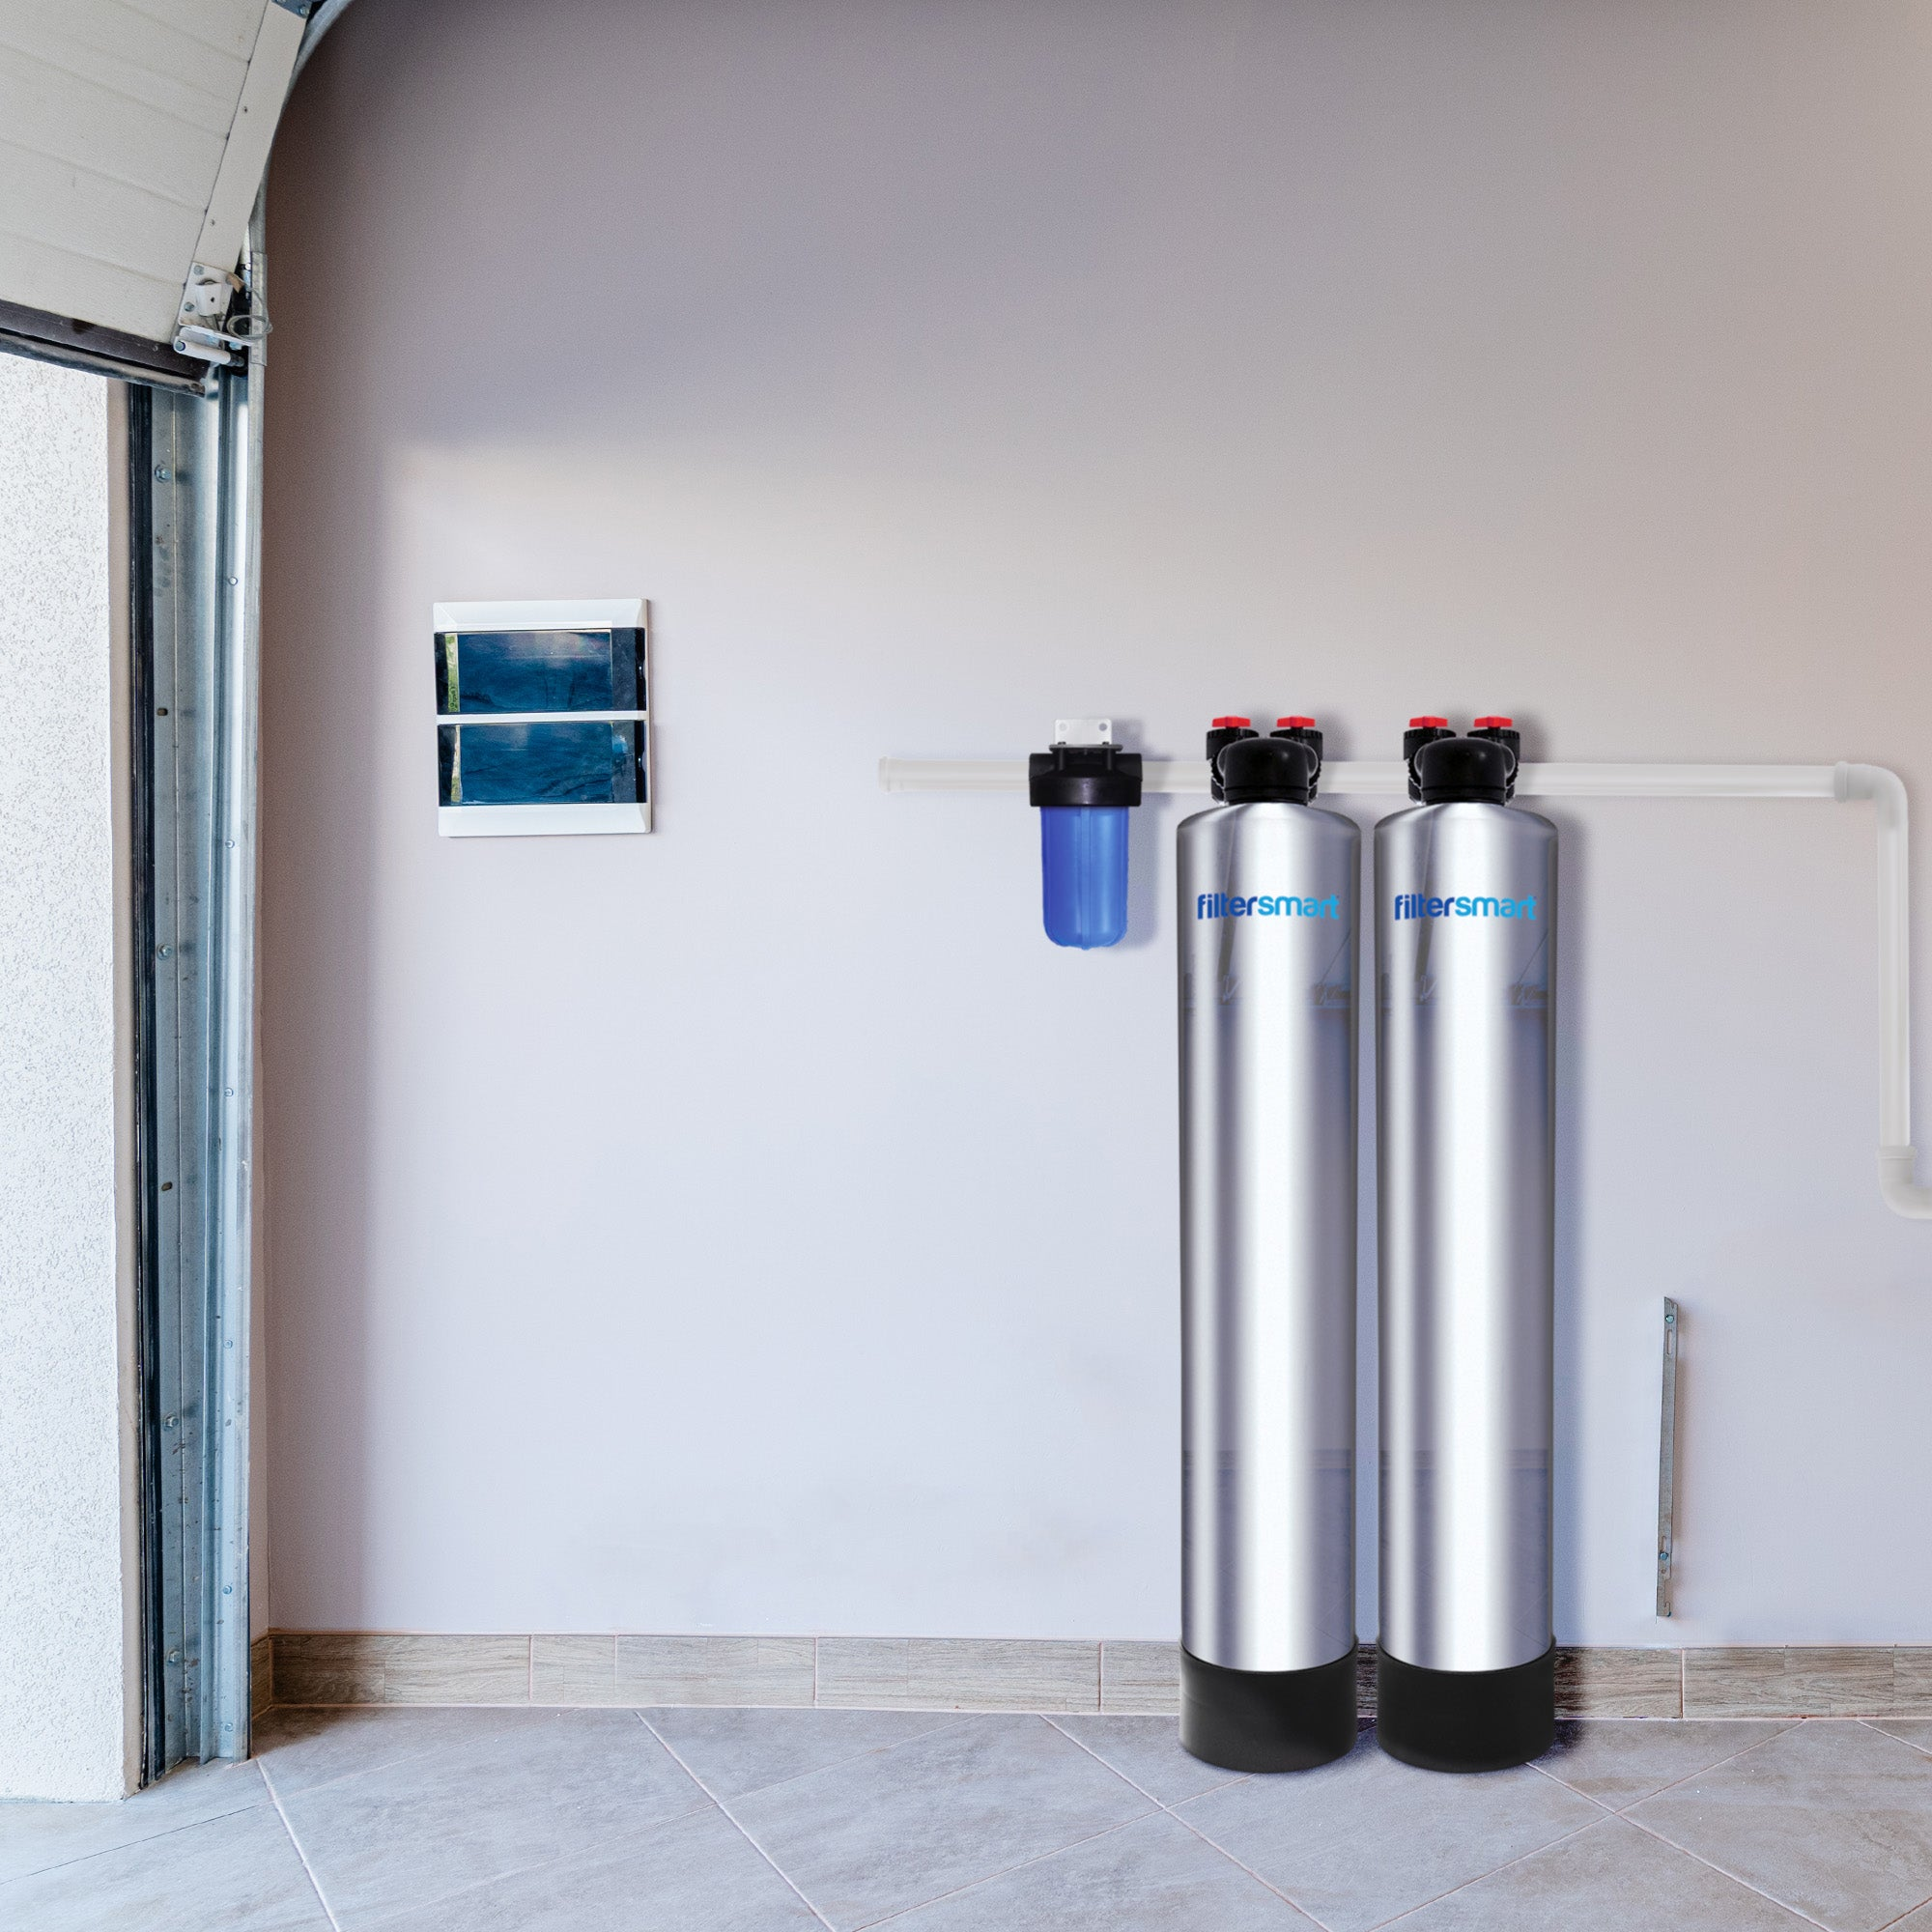 How Much Do Water Softeners Cost? Let's Break Down Price and Costs of Different Systems